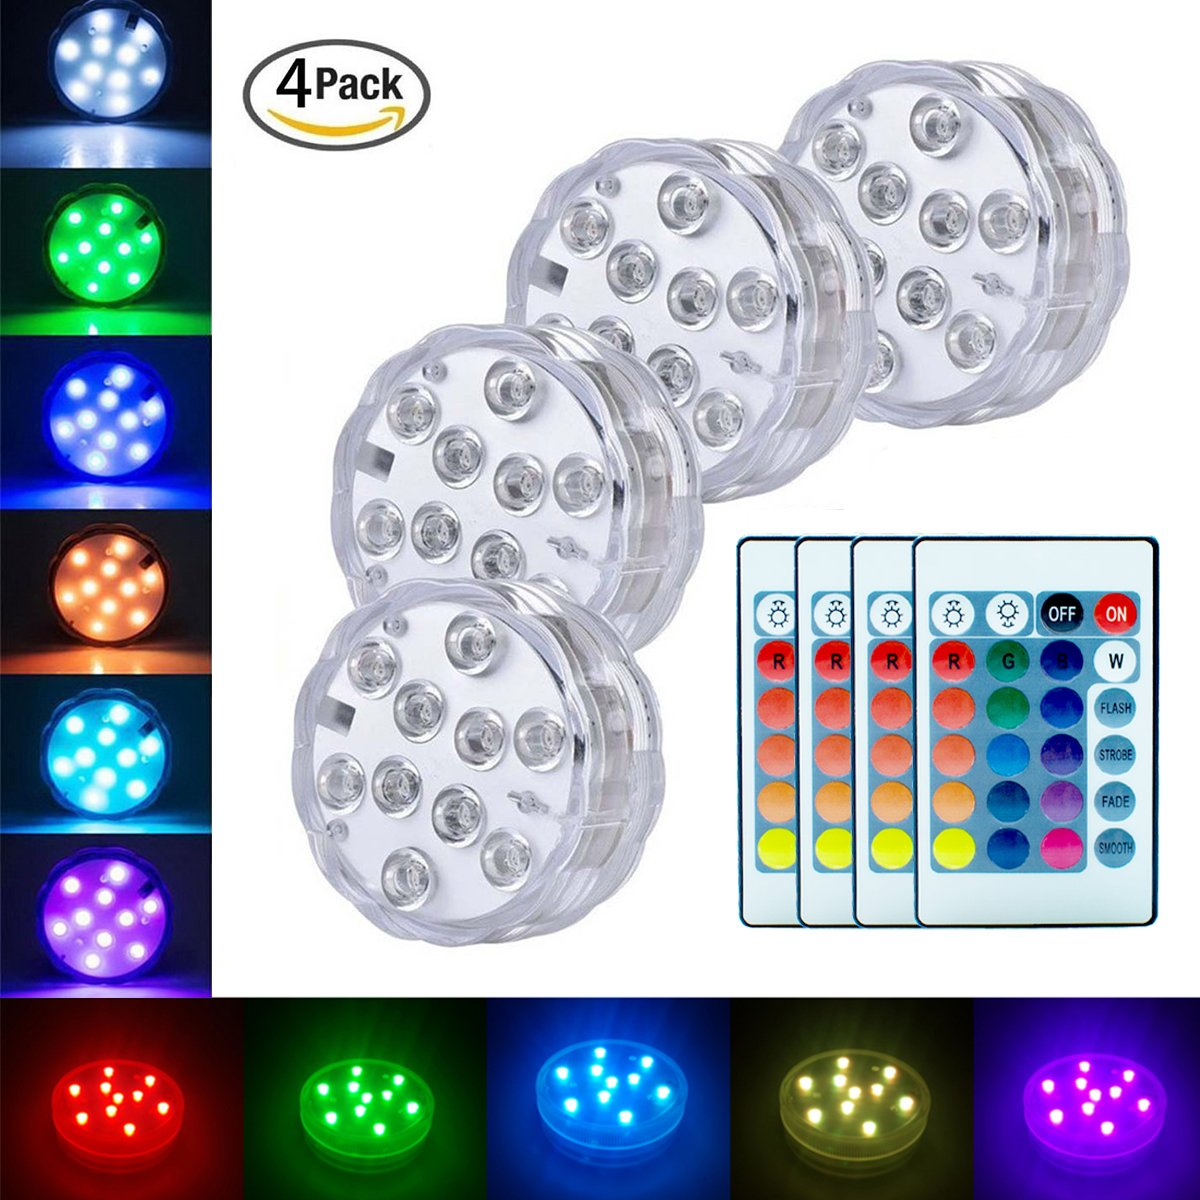 Submersible Led Lights Battery Operated Spot Lights With Remote Small Lamps Decorative Fish Bowl Light Remote Controlled Small Led Lights For Aquarium Vase Base Pond Wedding Halloween Party (4 Pack) by YiaMia